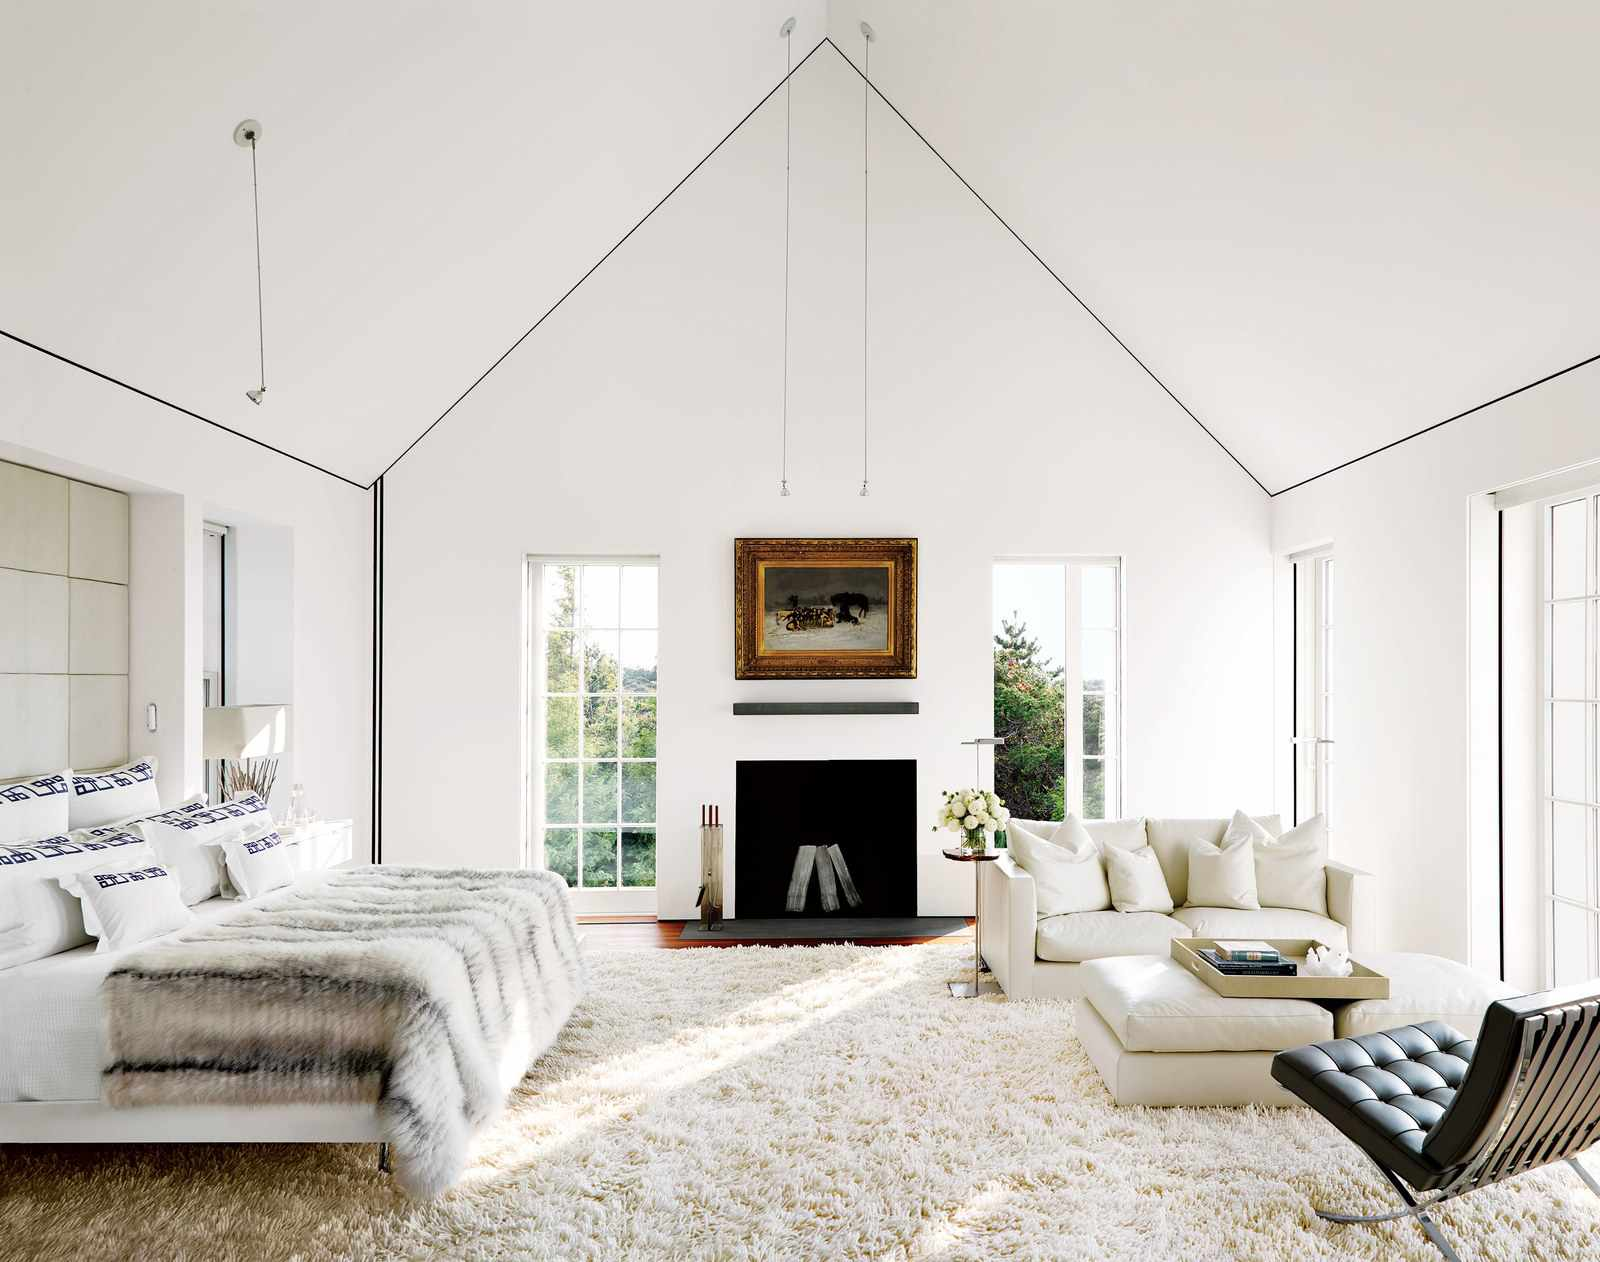 An all-white bedroom on Nantucket Island.